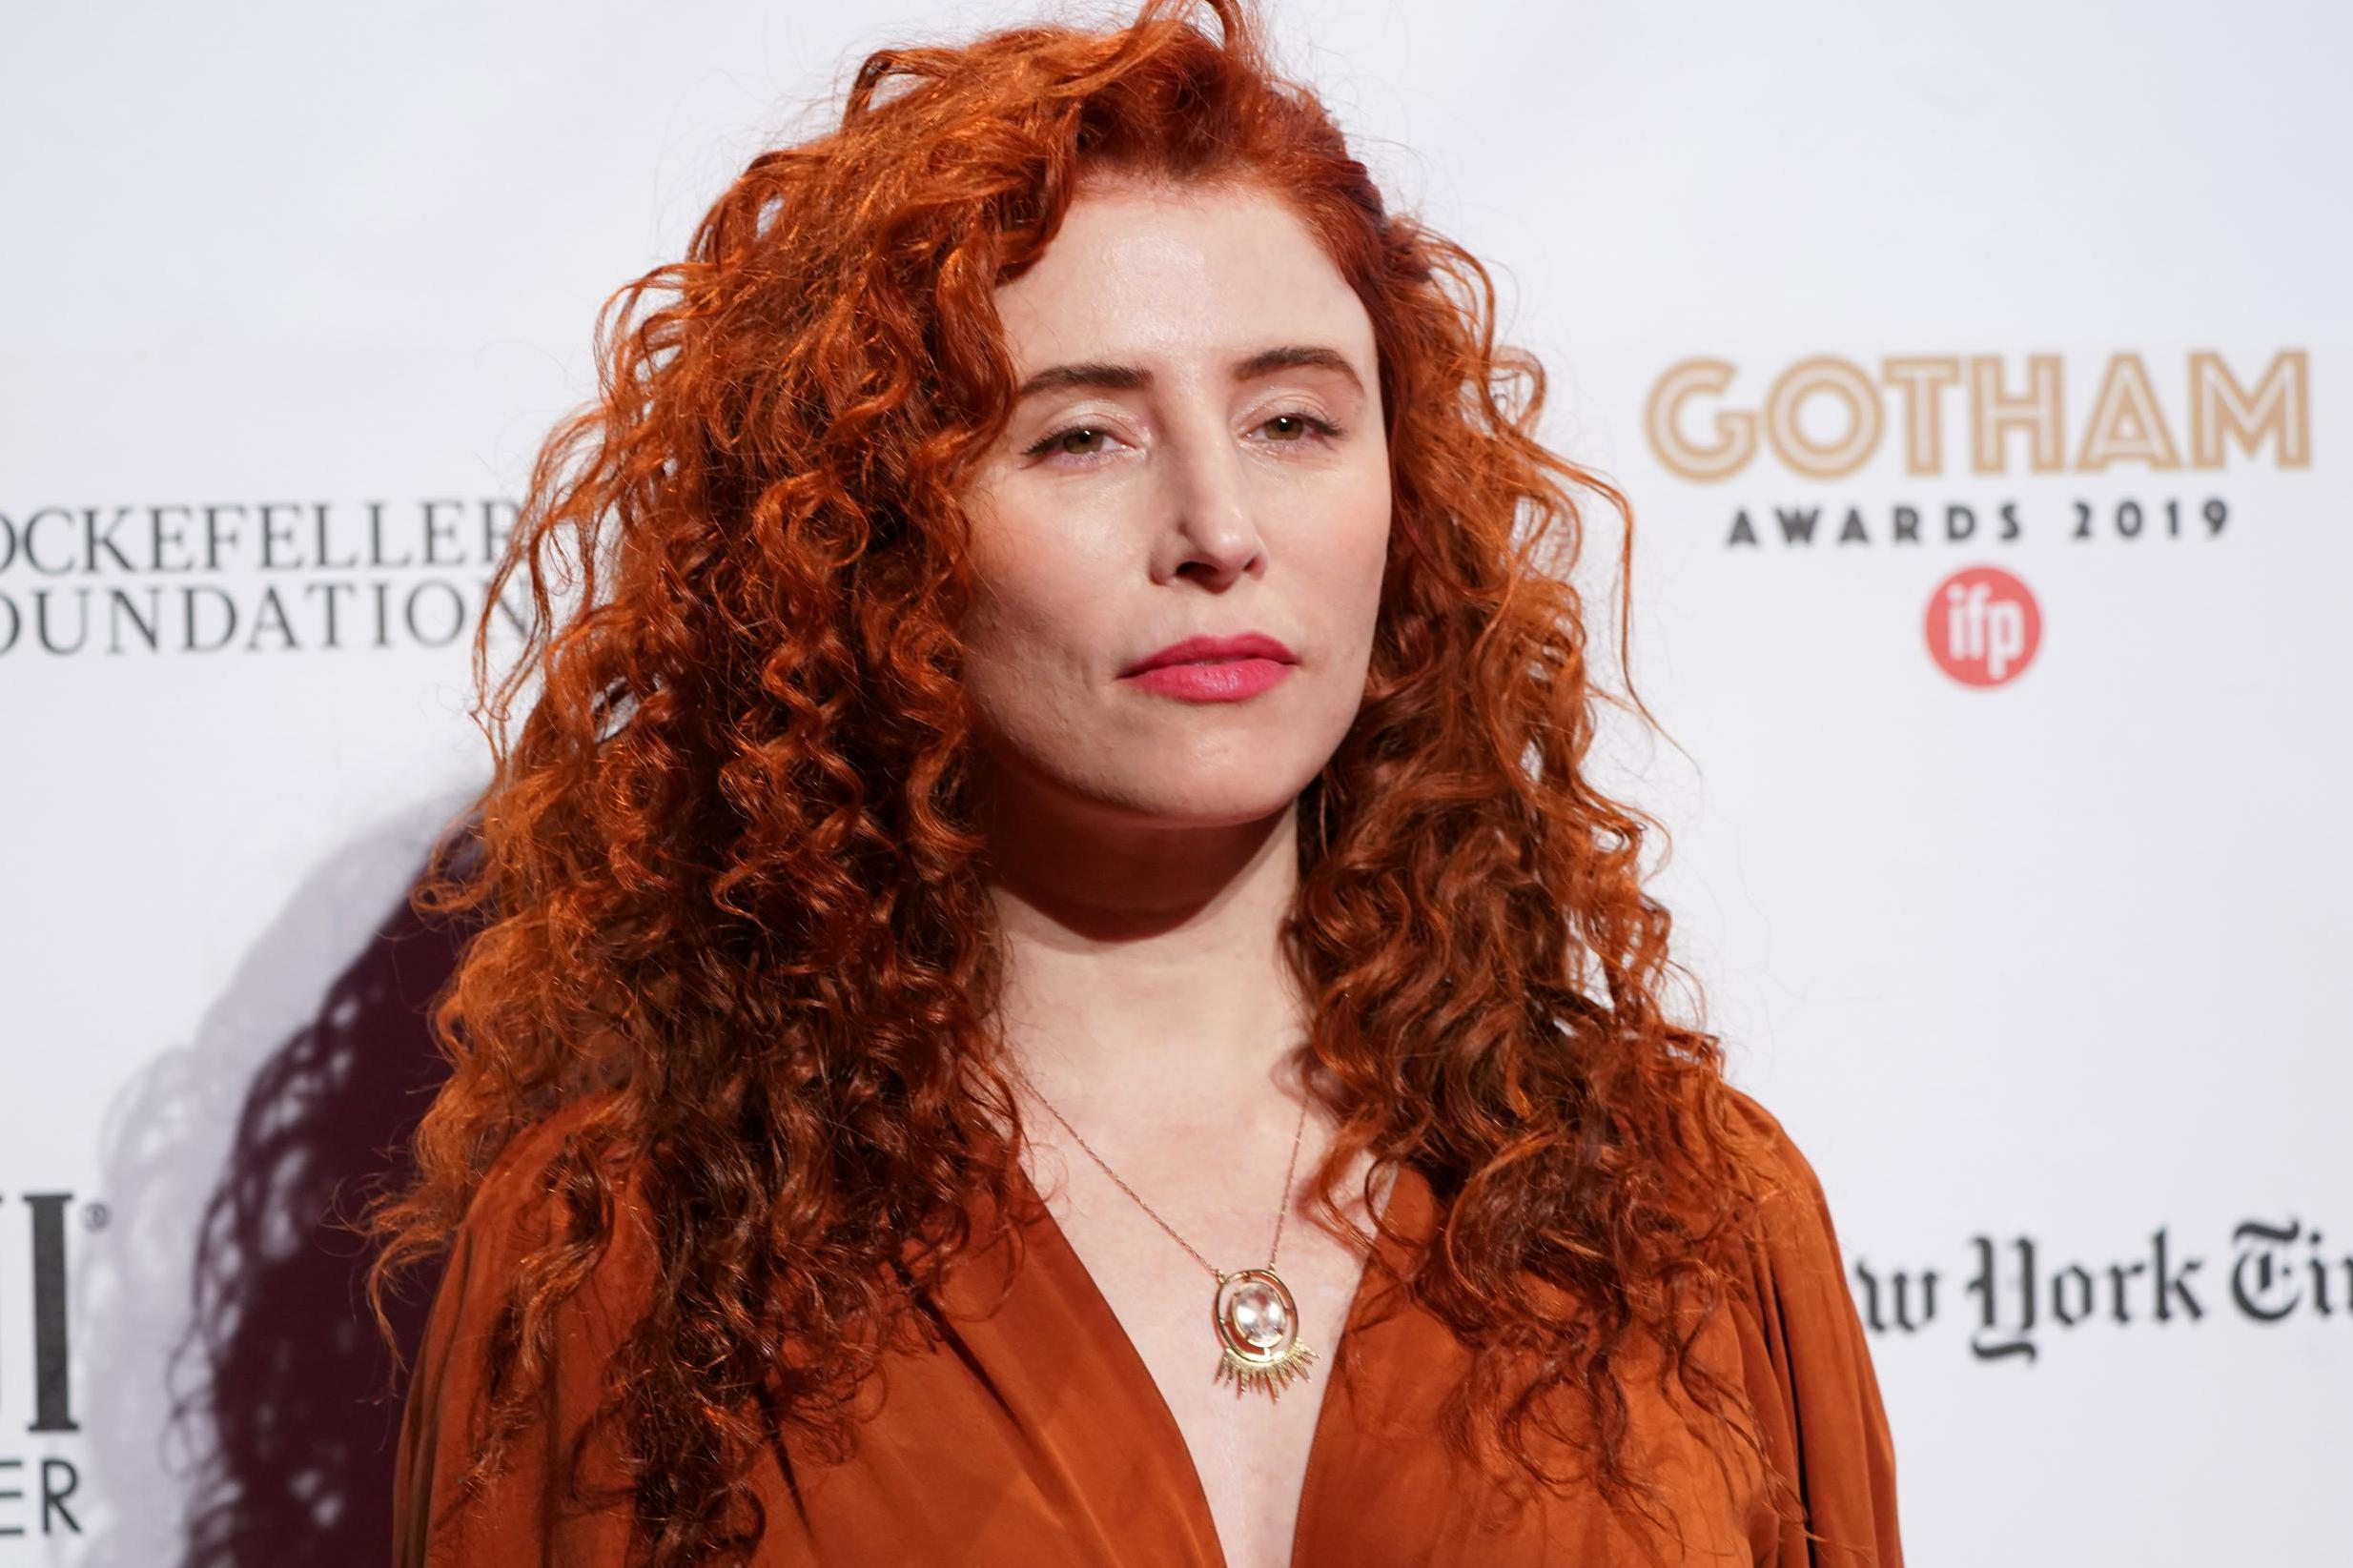 Honey Boy director Alma Har'el calls out Golden Globes over lack of female nominees: 'These are not our people'